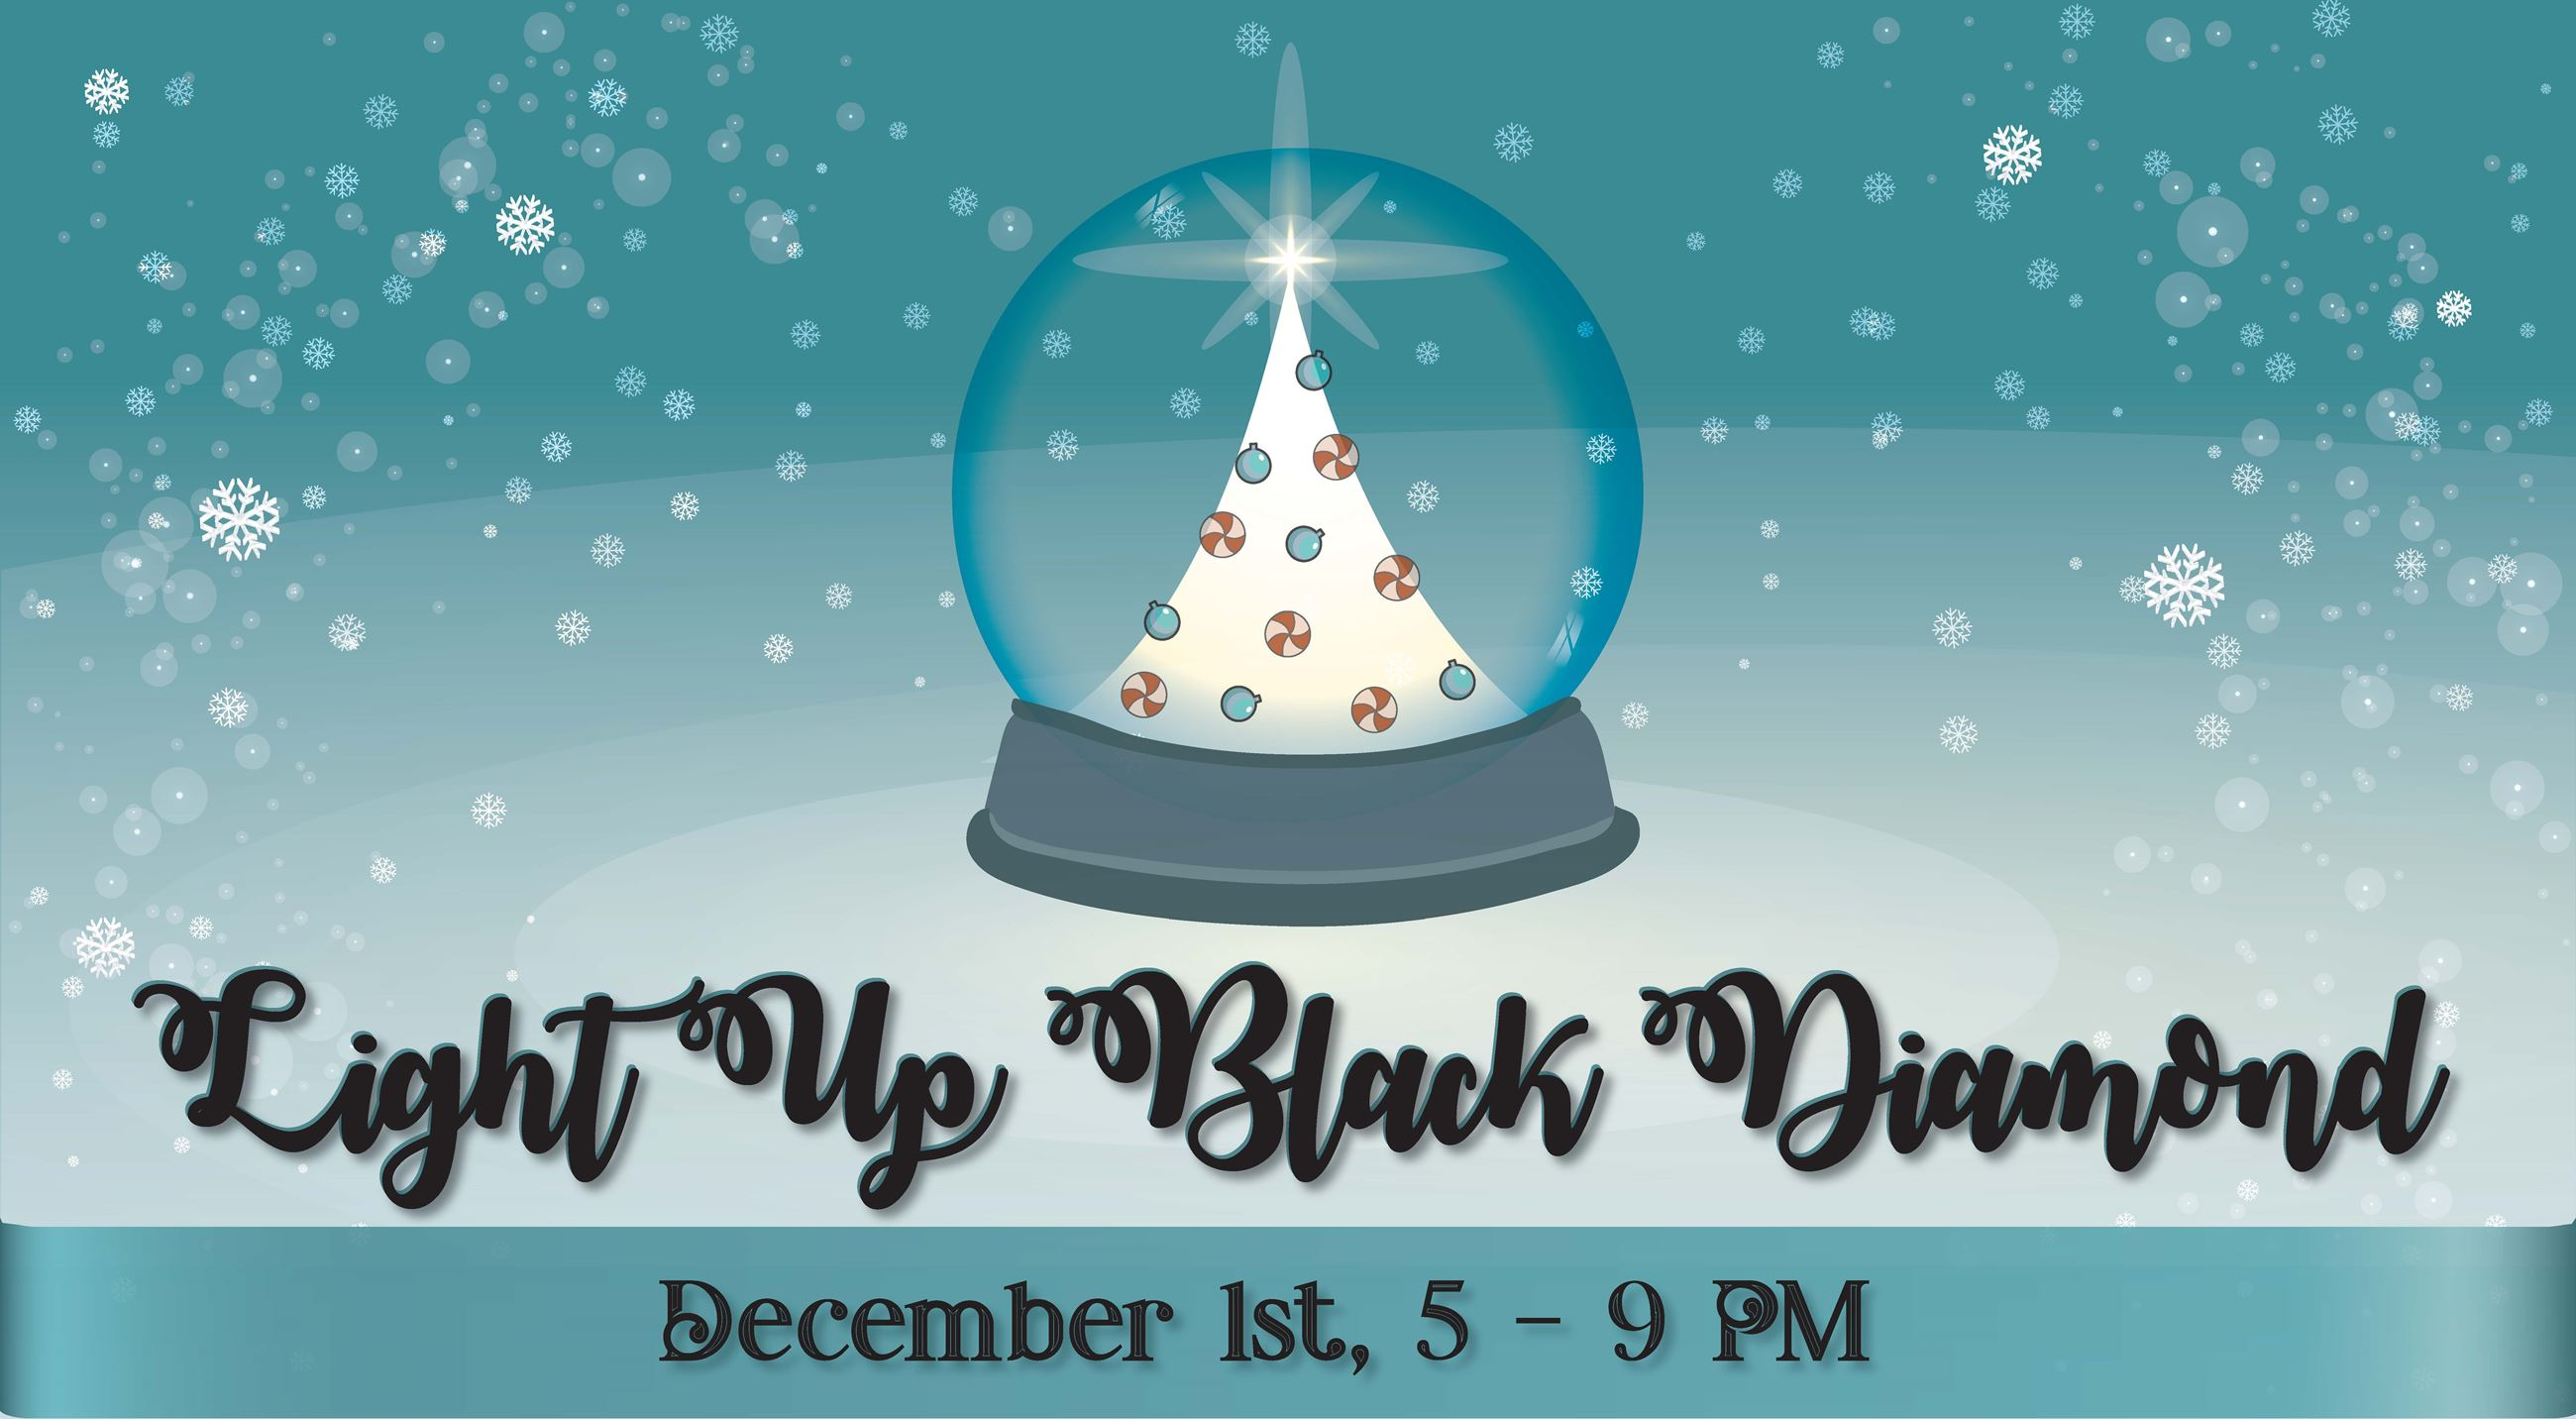 Light Up December 1, 5 to 8 pm